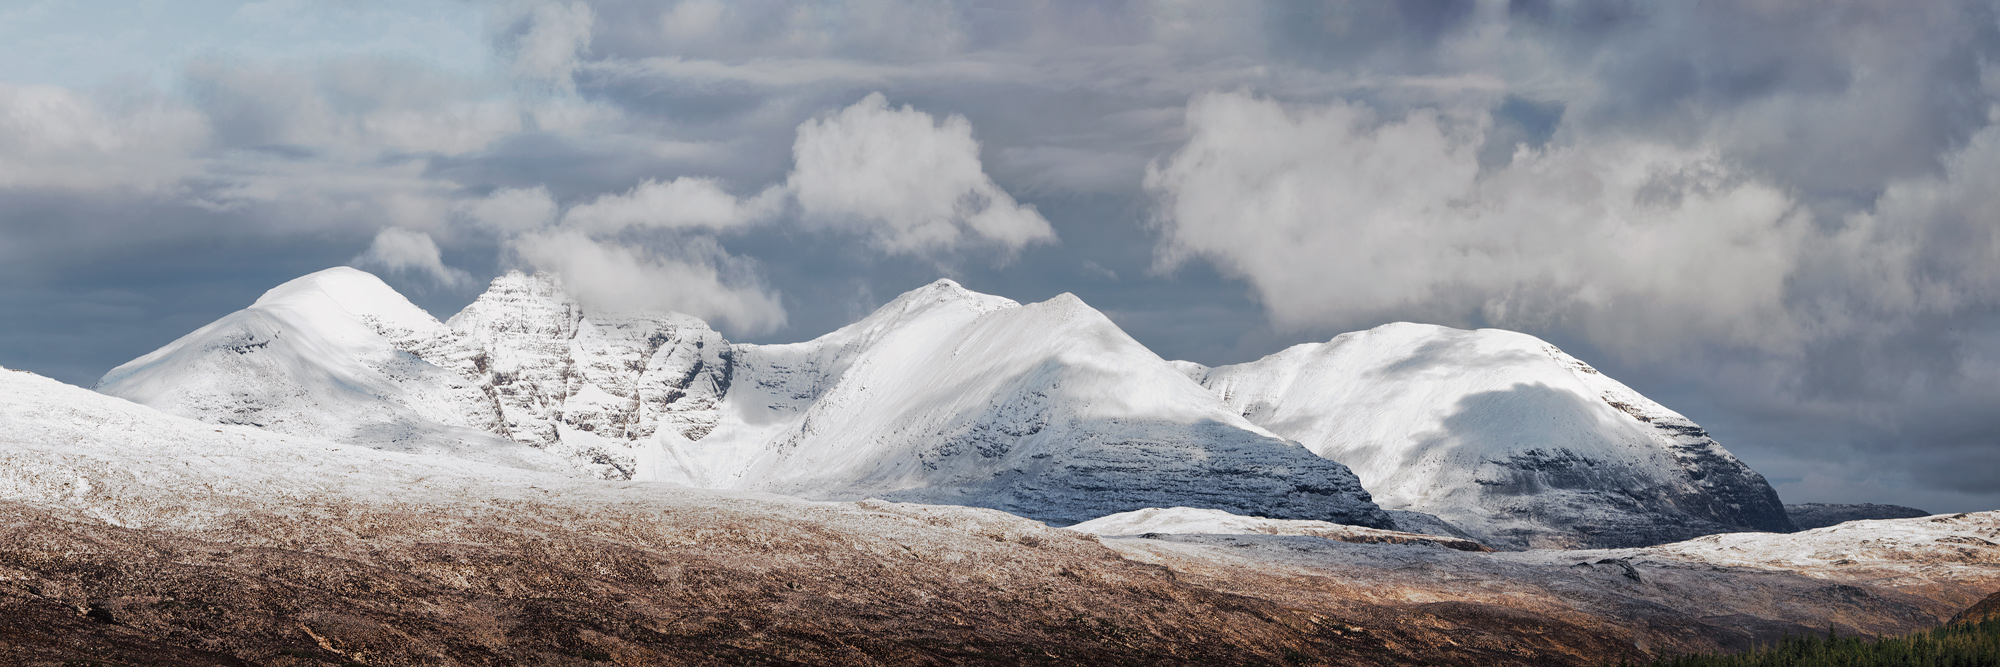 An Teallach snow clad and dappled with light and shade on the high road connecting Braemore Junction with Dundonnell